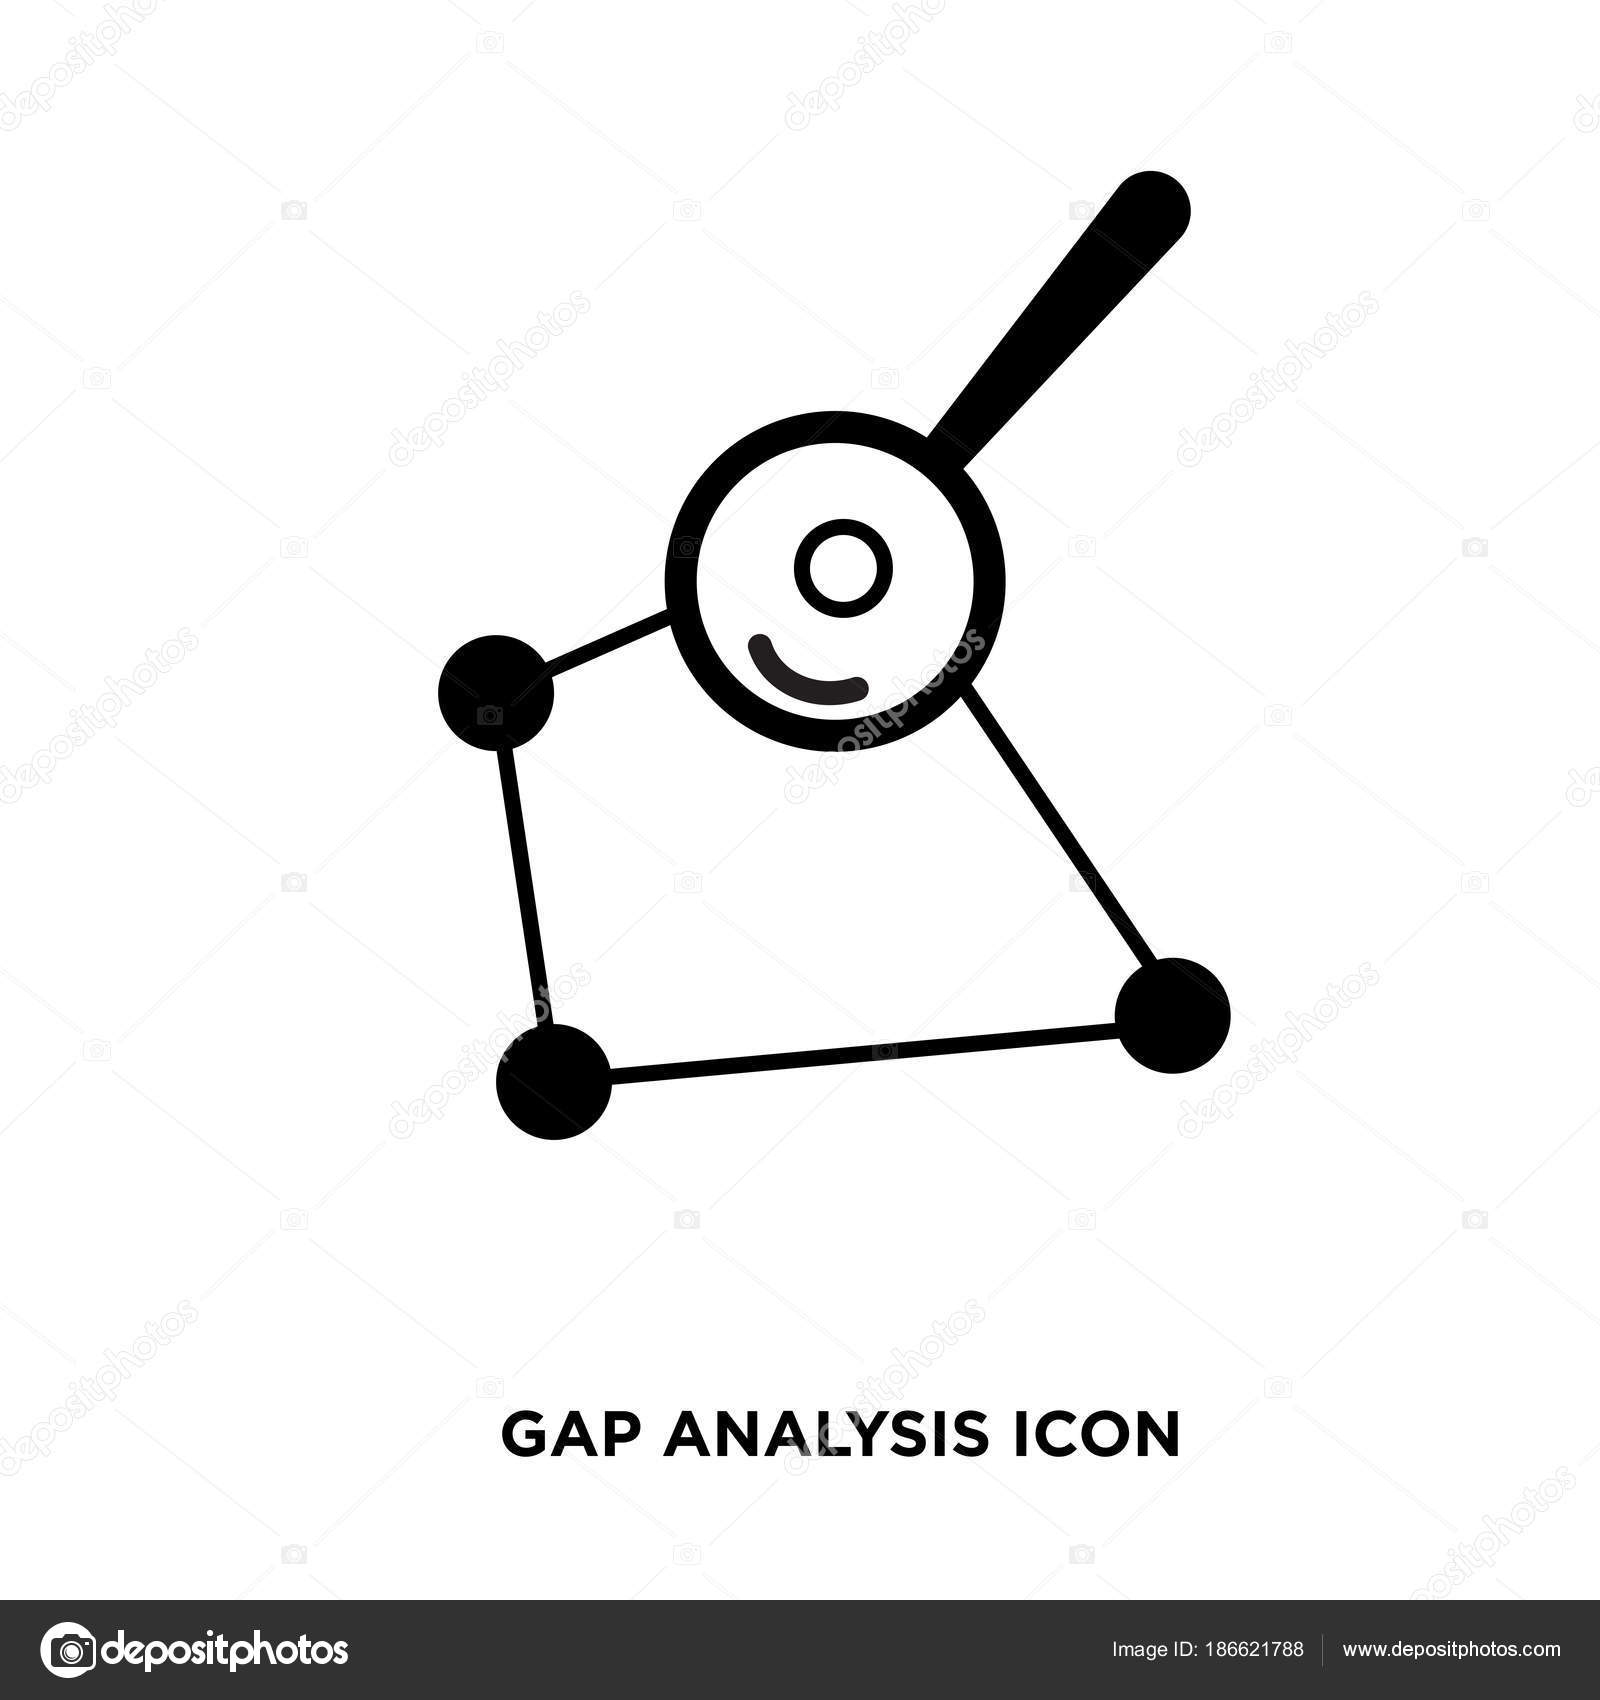 Gap analysis icon isolated on white background for your